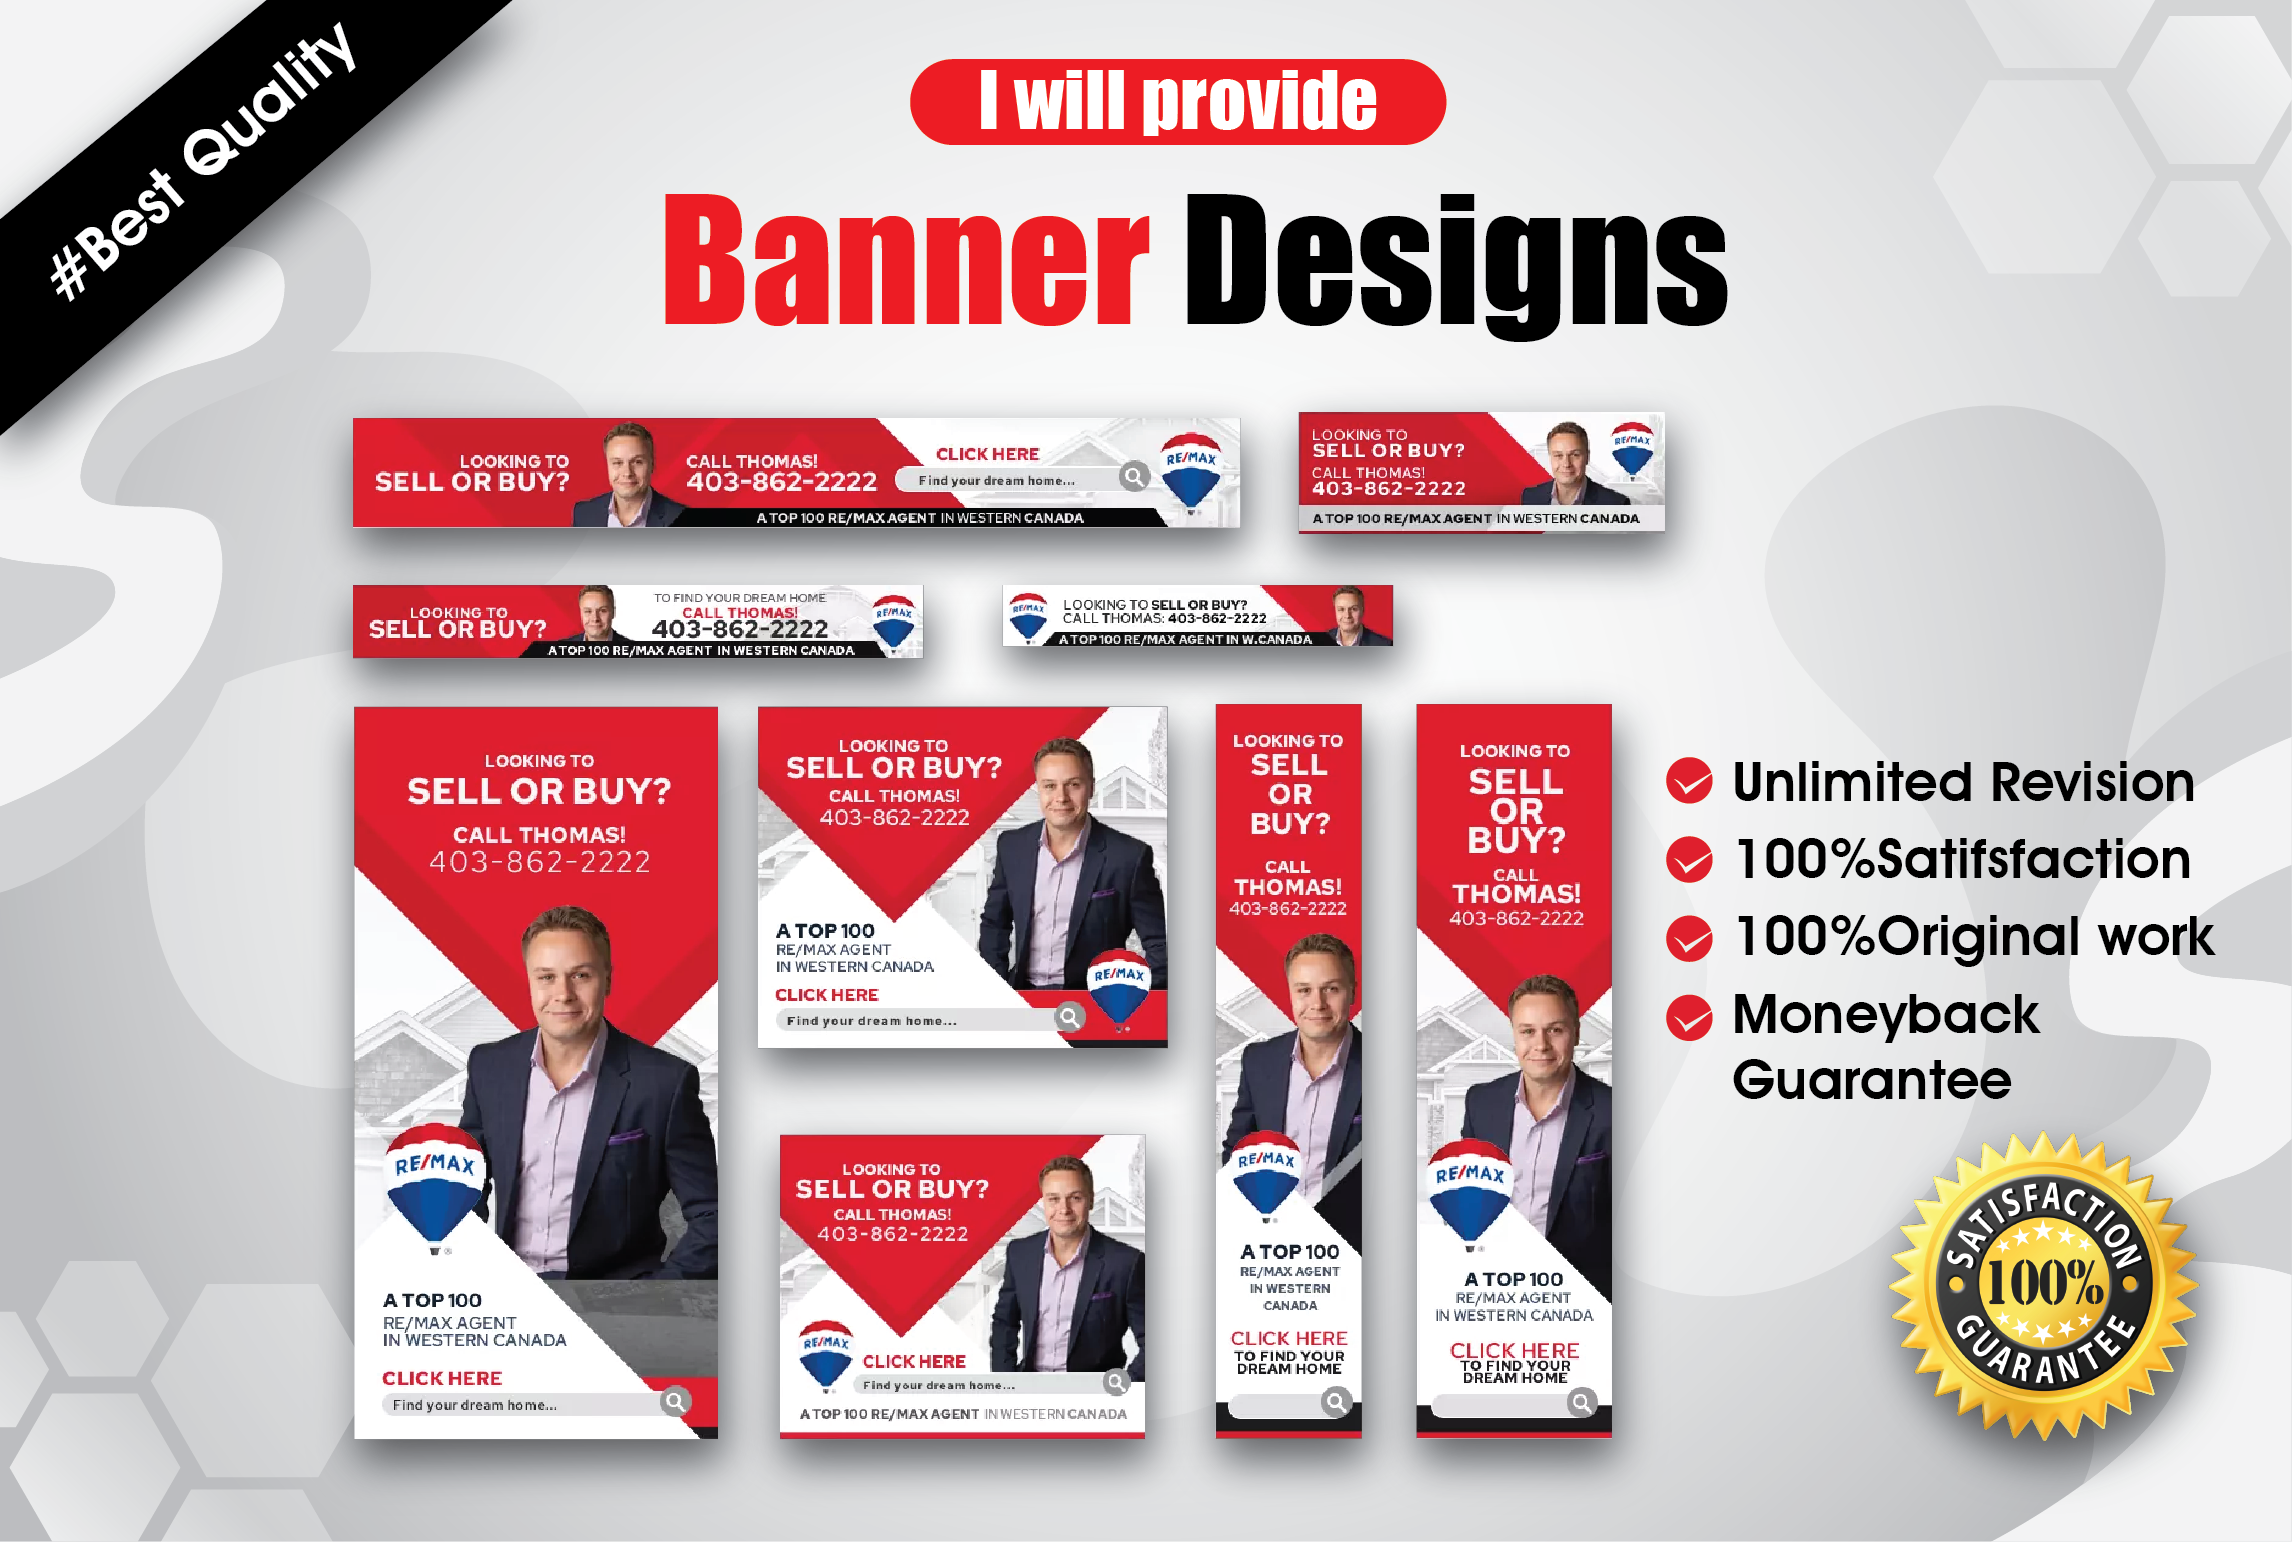 I will design all types of static and animation banners for your business